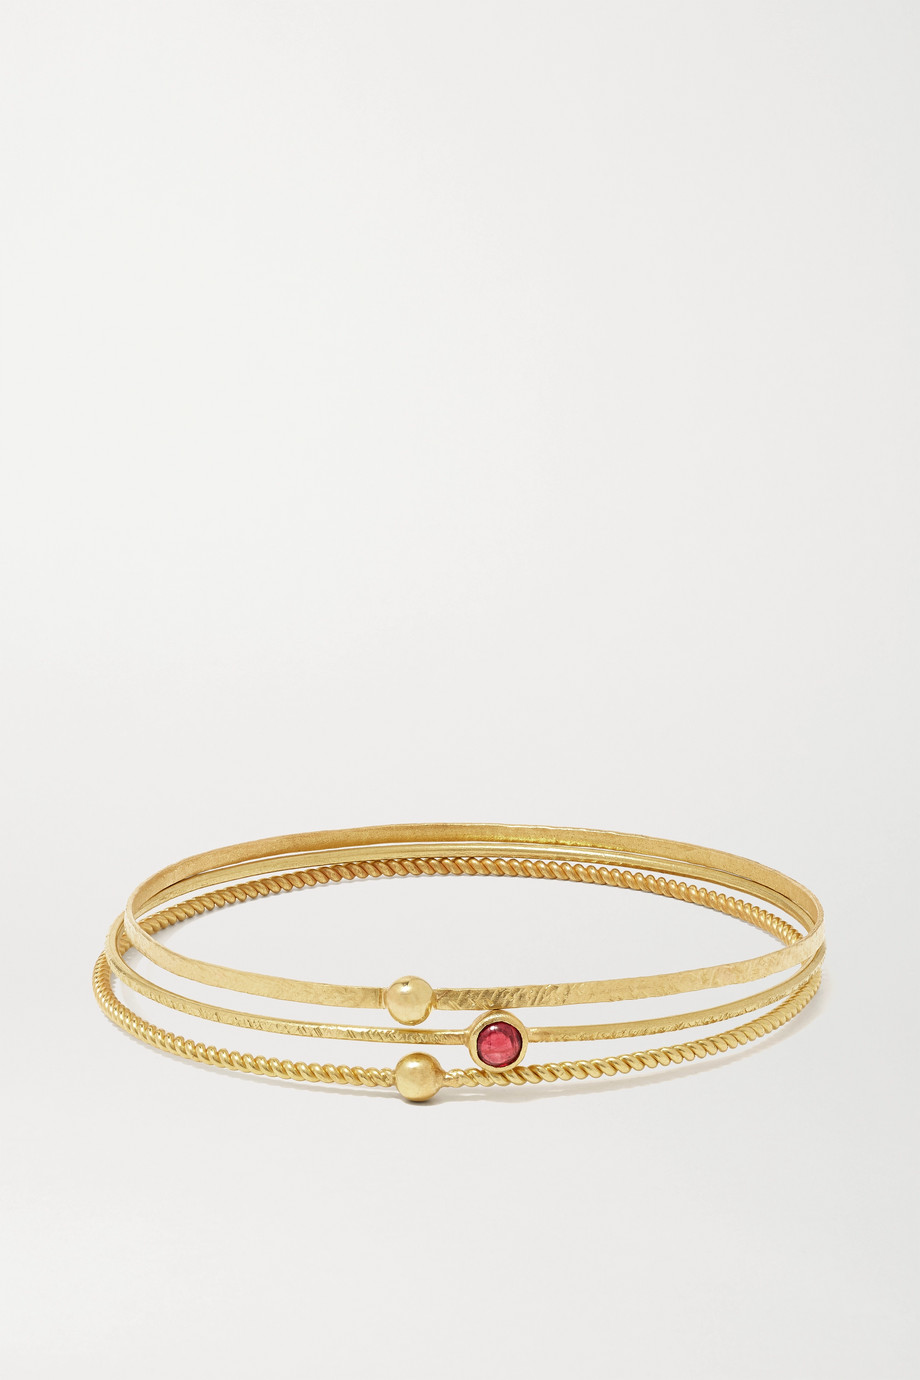 Pippa Small Set de trois bracelets en or 18 carats et spinelle - NET SUSTAIN